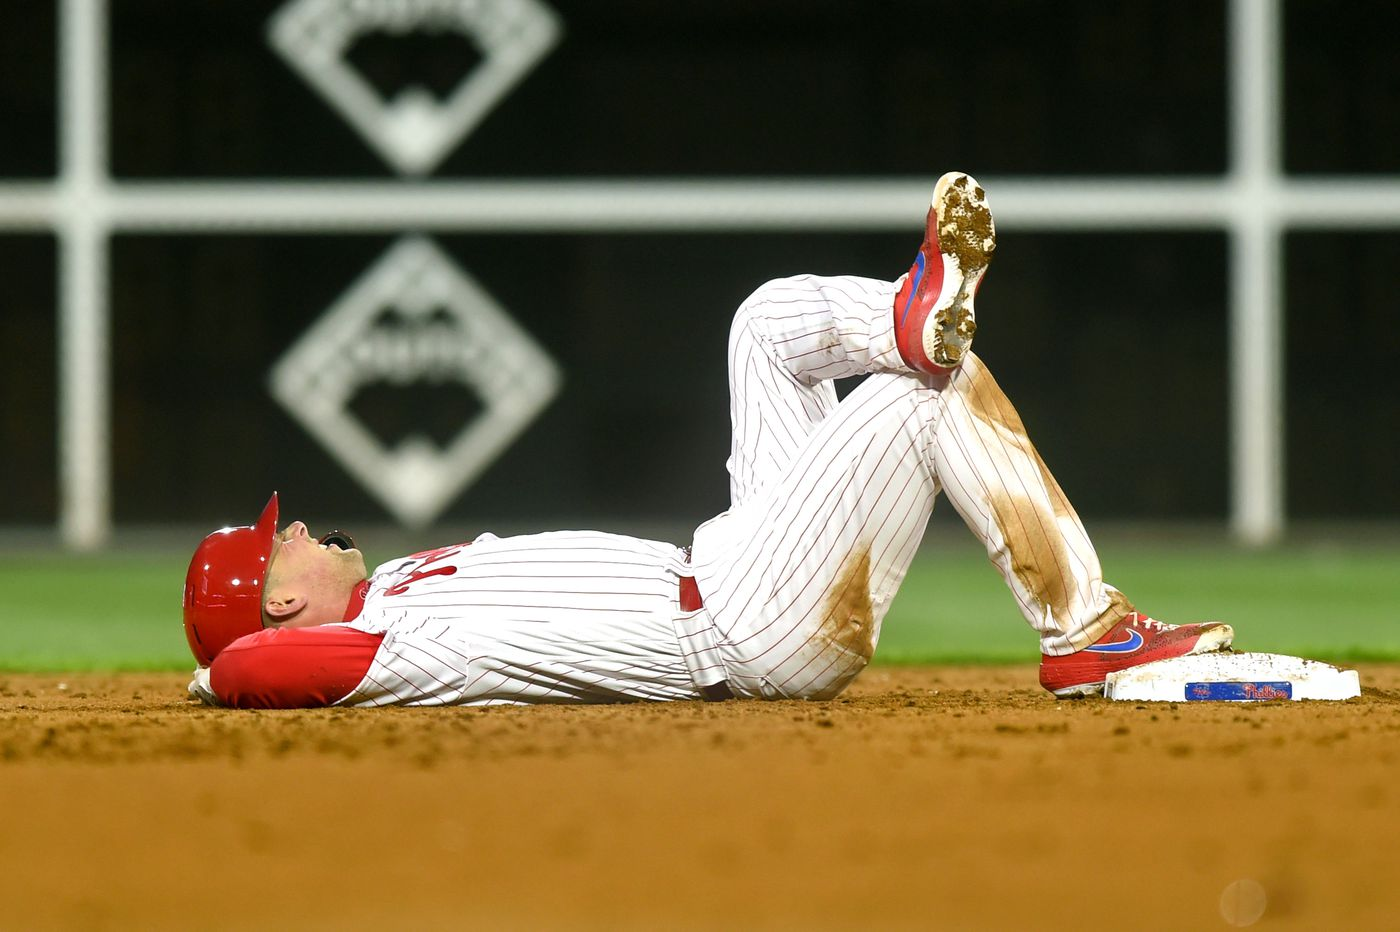 Phillies' Rhys Hoskins suffers ankle sprain, out of lineup for game vs. Mets